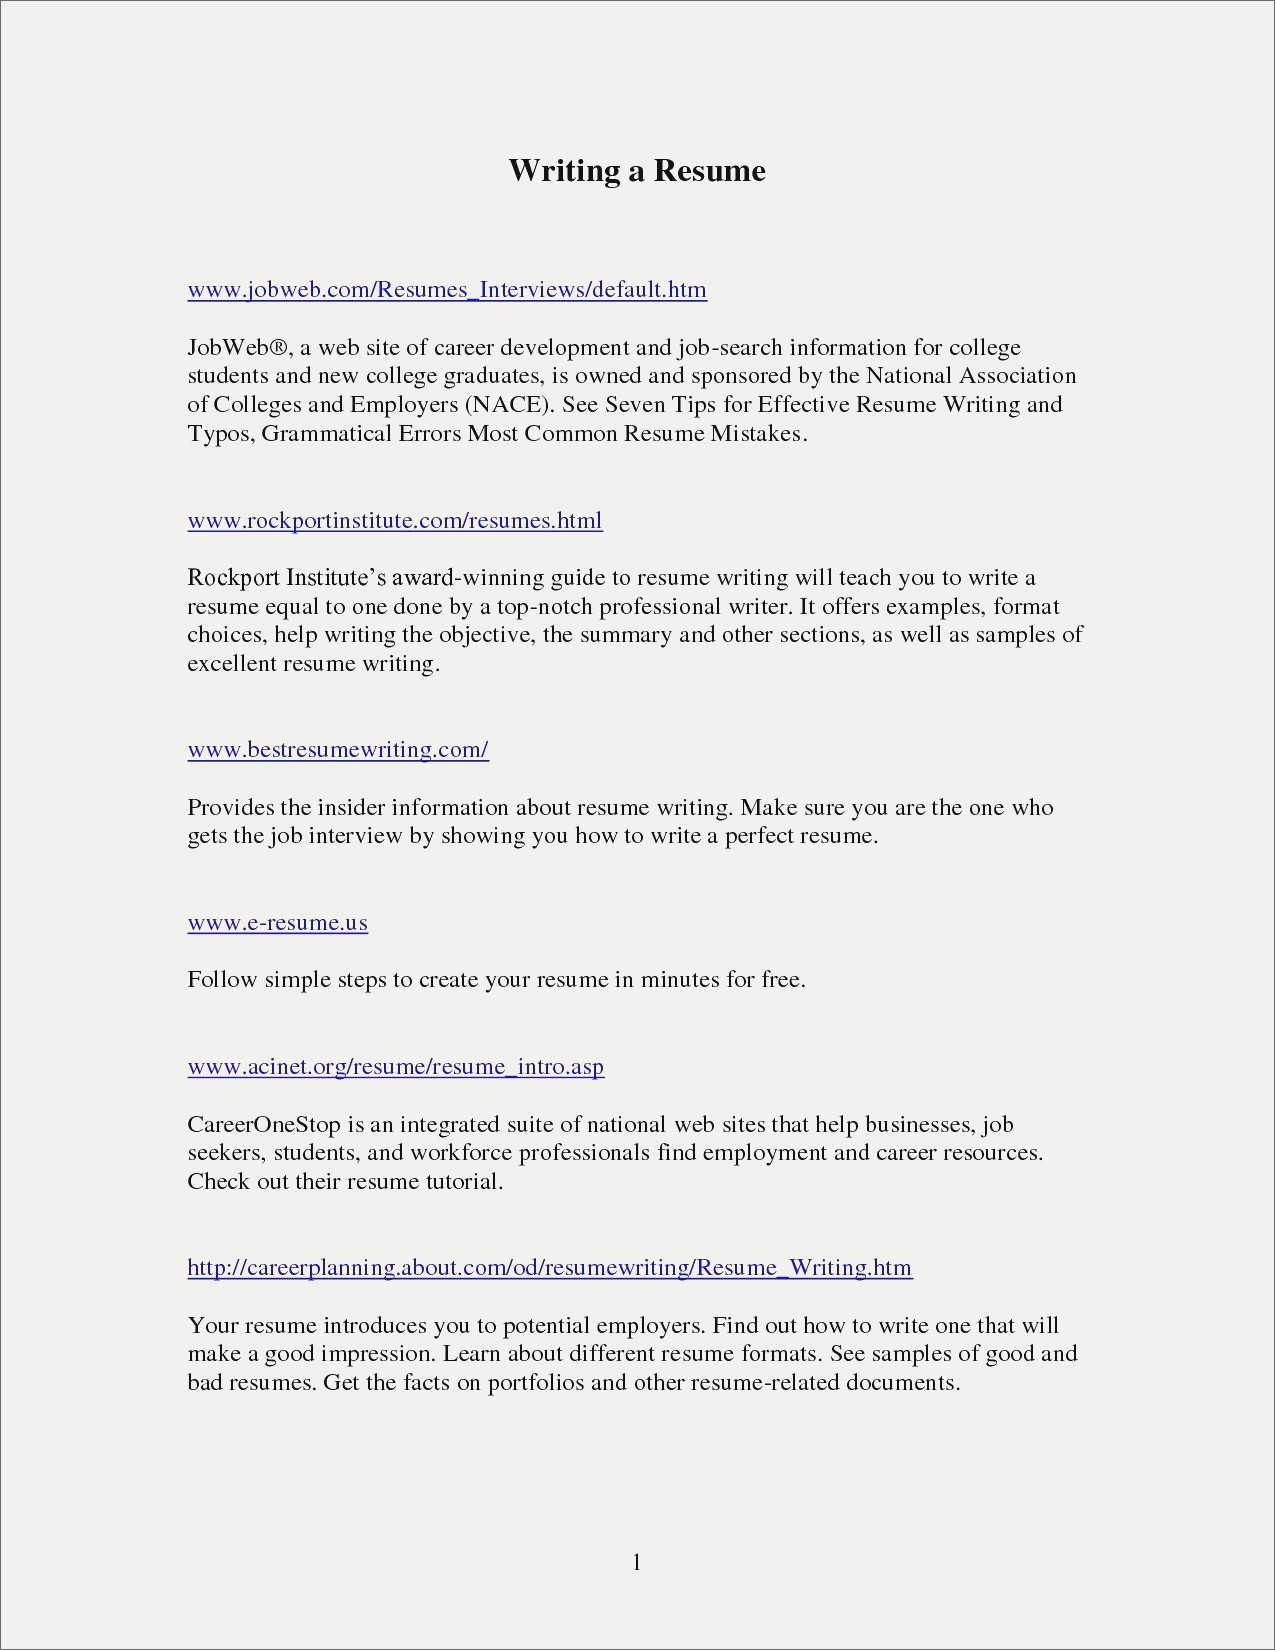 My Perfect Resume Safe - How to Write the Perfect Resume Save Sample Winning Resumes New